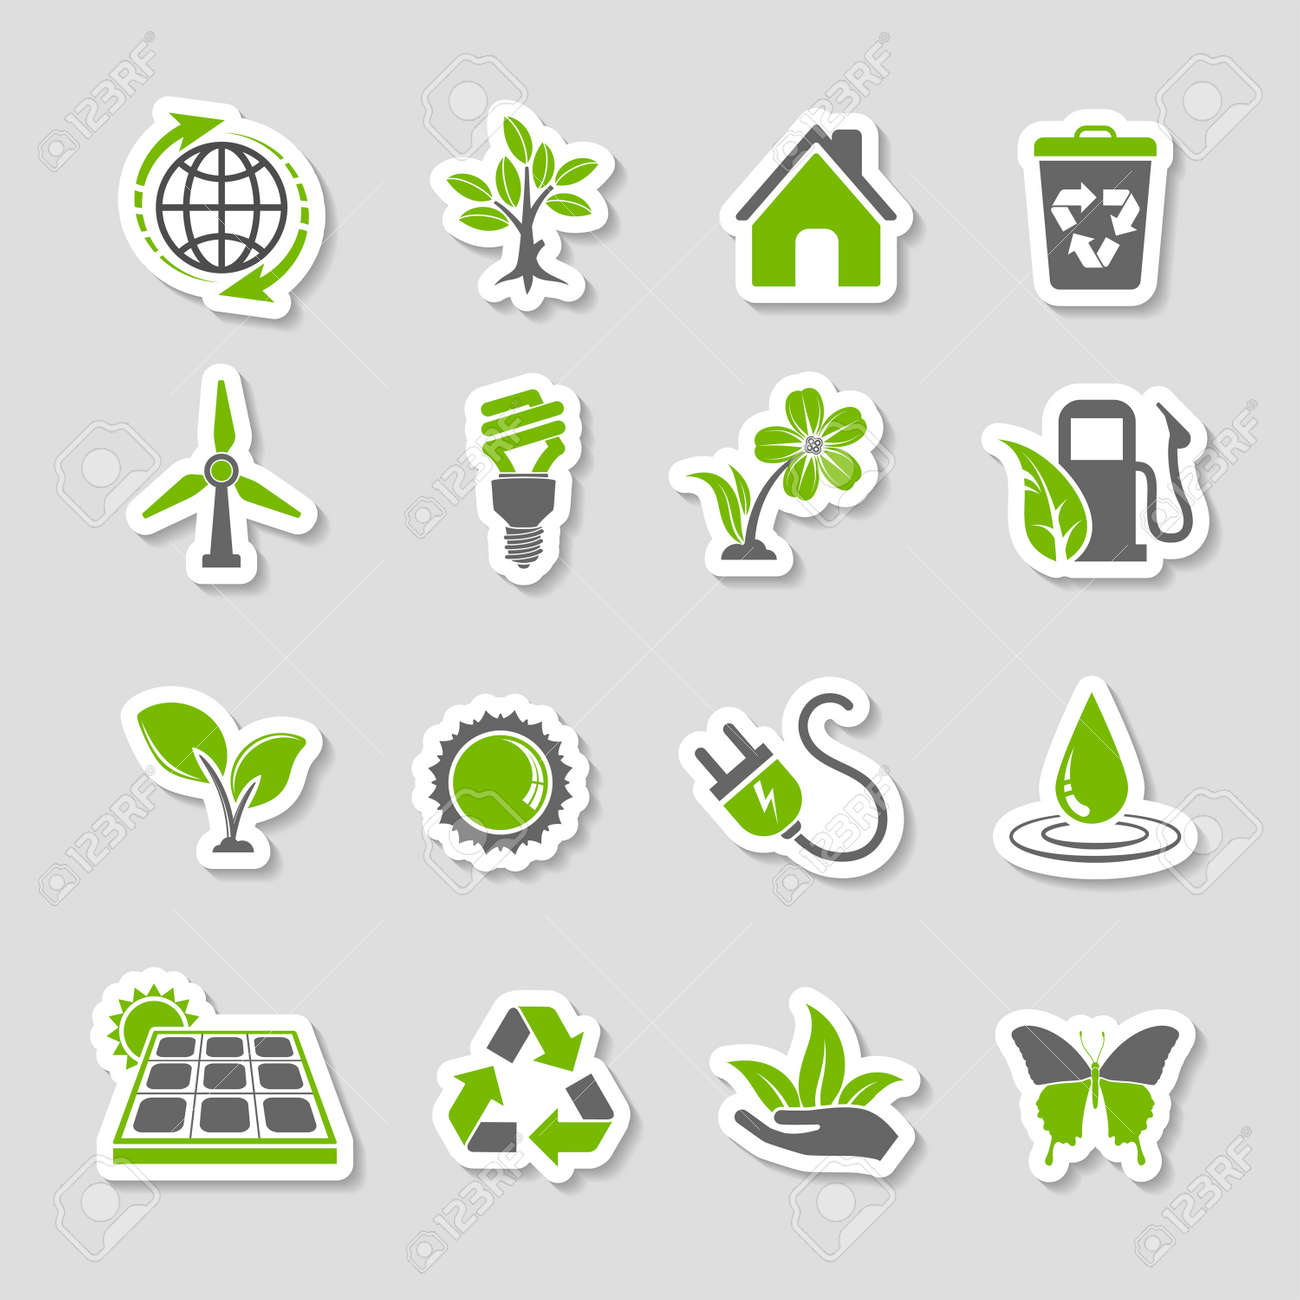 Collect Environment Icons Sticker Set with Tree, Leaf, Light Bulb, Recycling Symbol. Vector in two colours. - 36627768